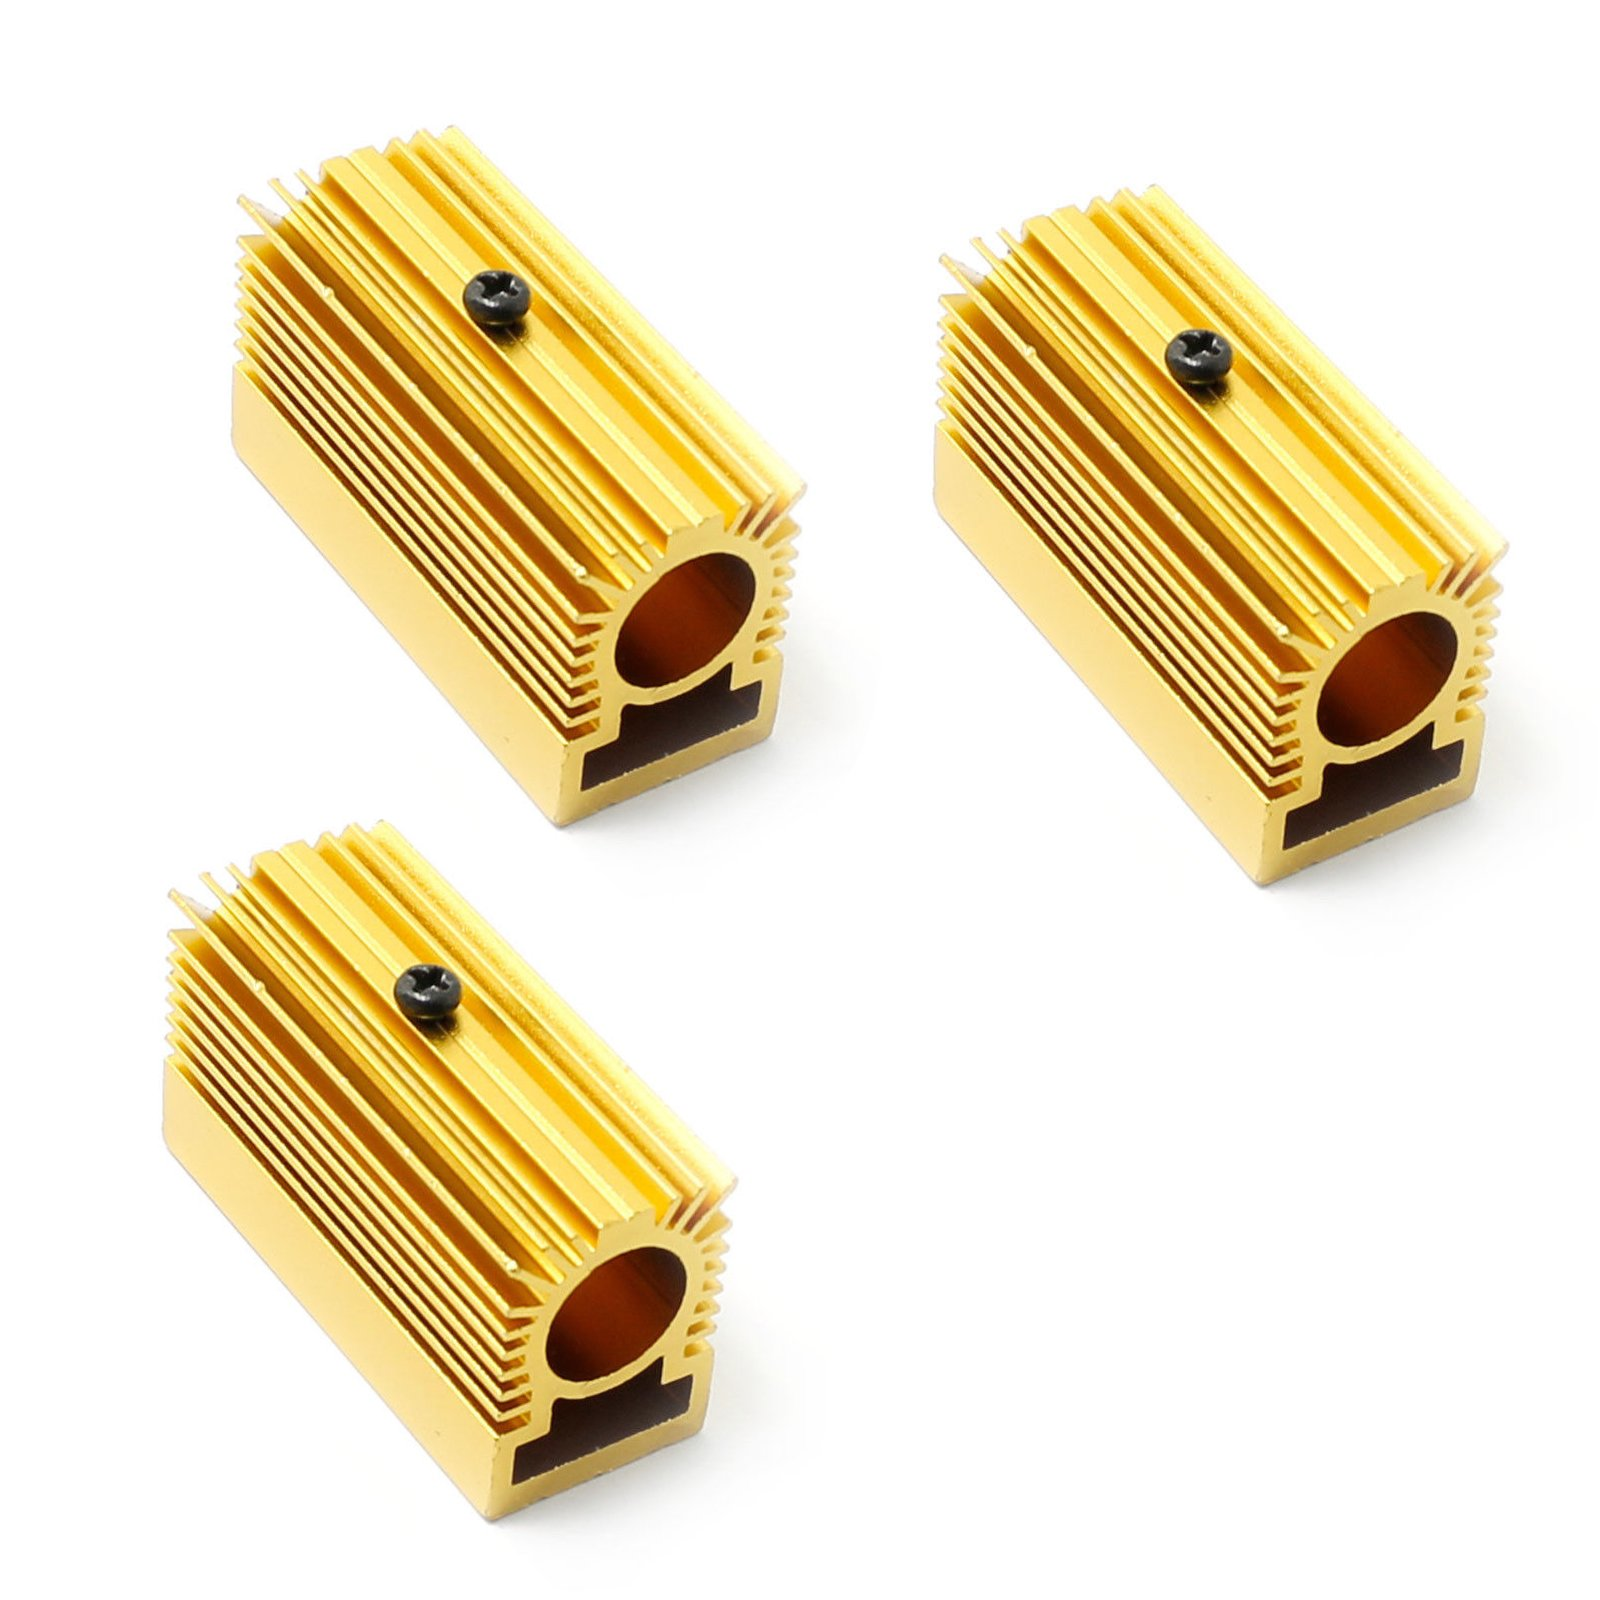 Golden Aluminium Cooling Heat Sink for 12mm Laser Diode Modules 20x27x50mm(Pack of 3)